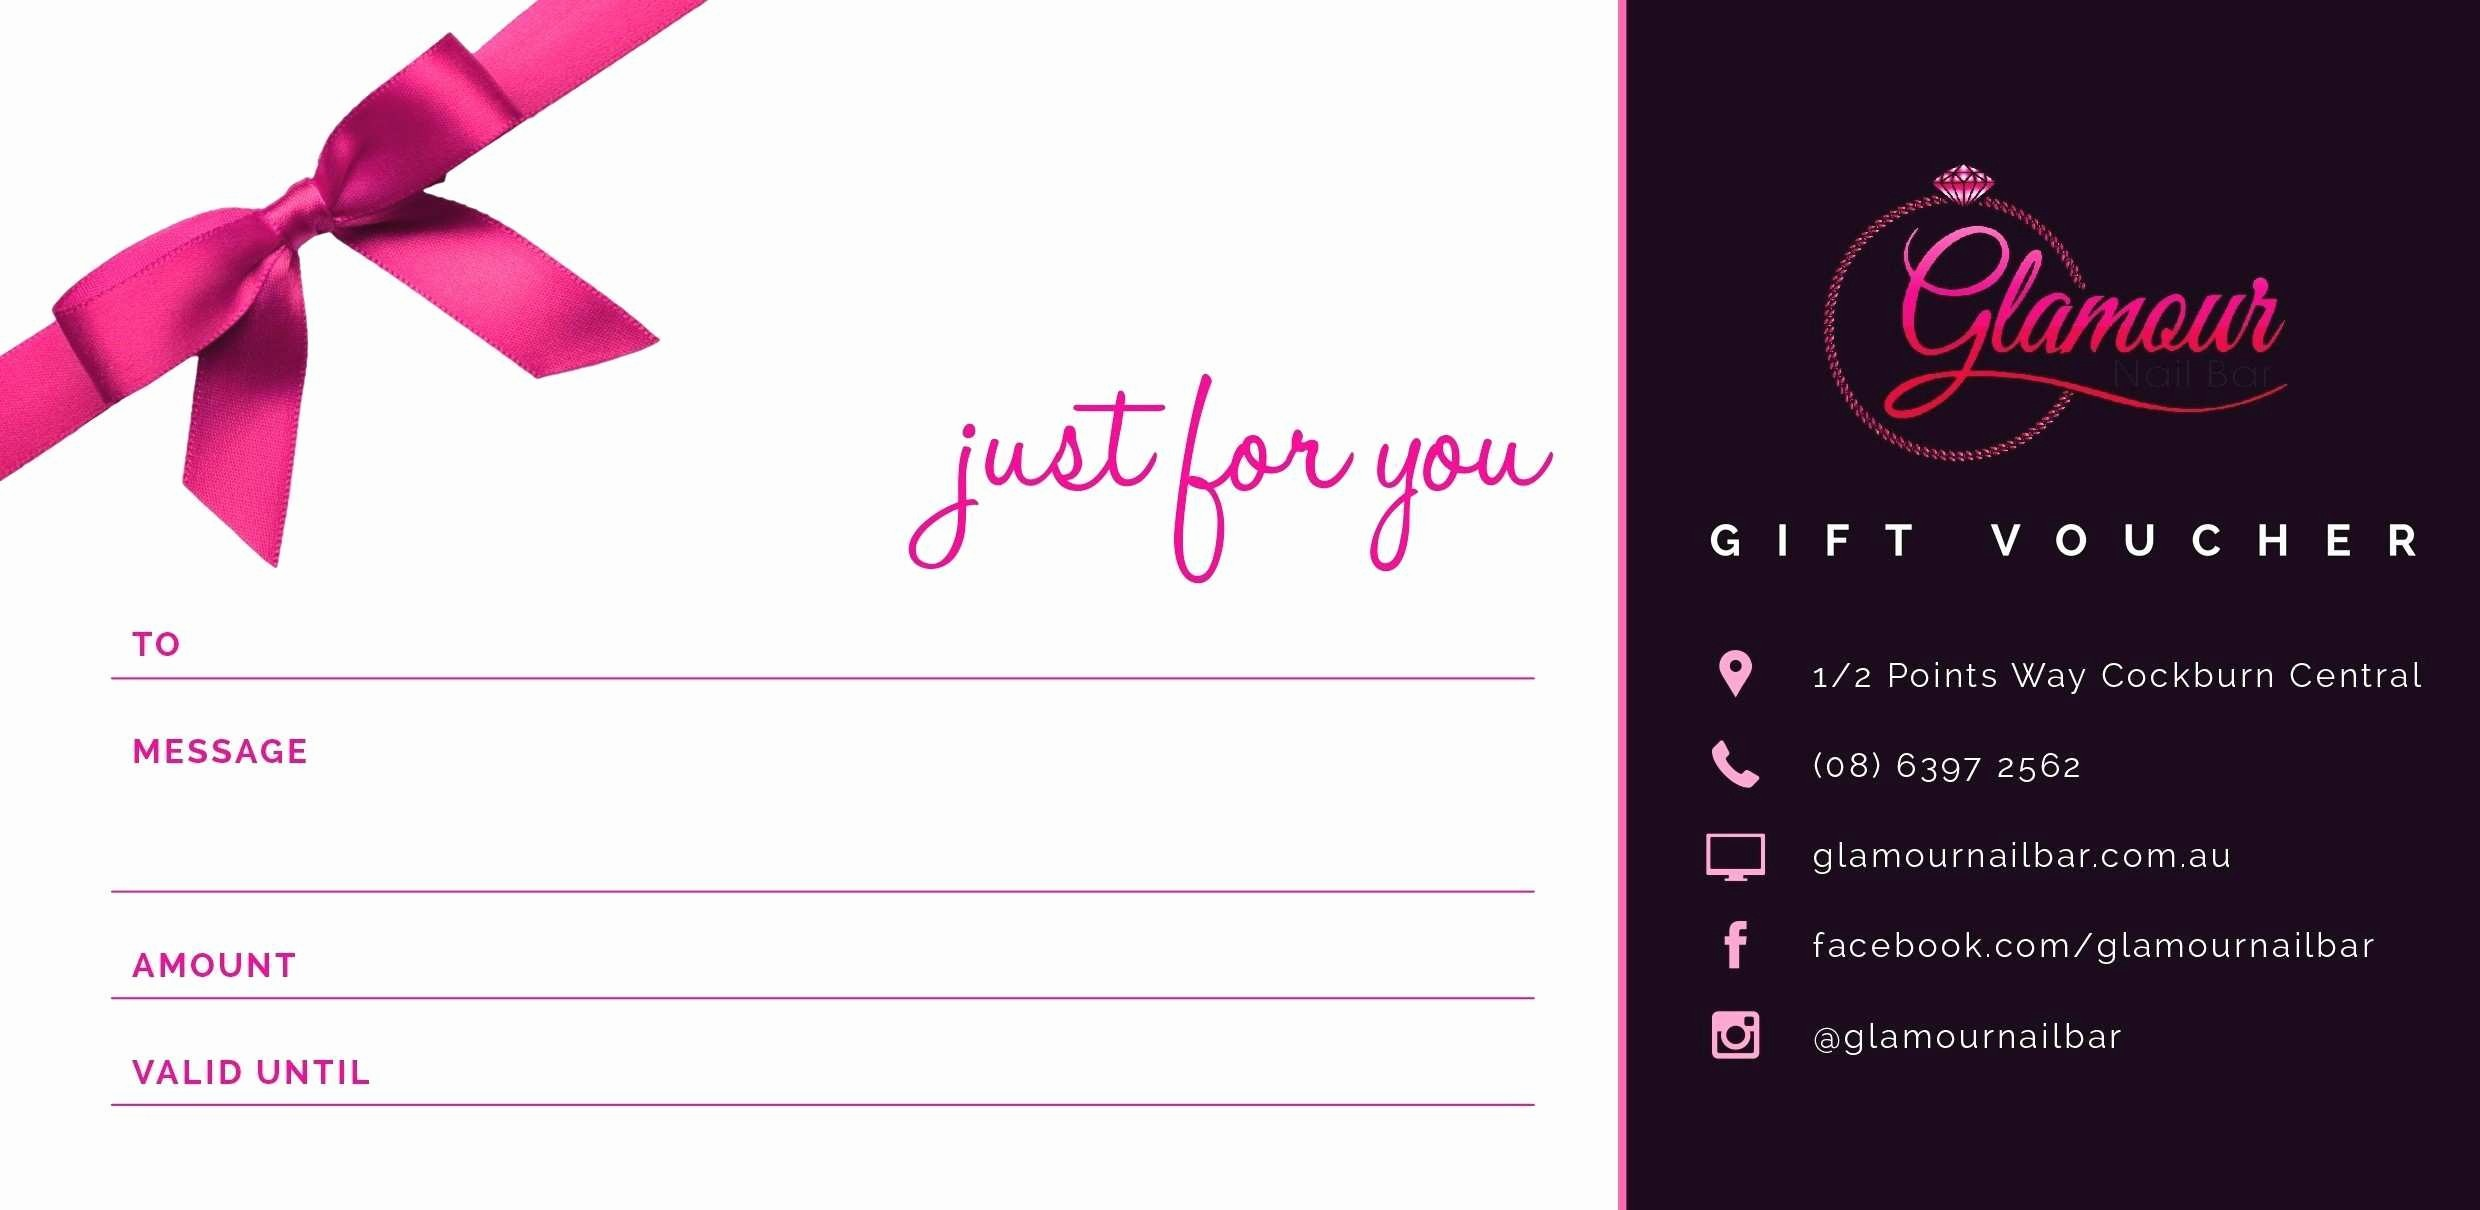 Free Gift Certificate Template Pdf New Fresh Free Christmas Gift Certificate Templates Pdf